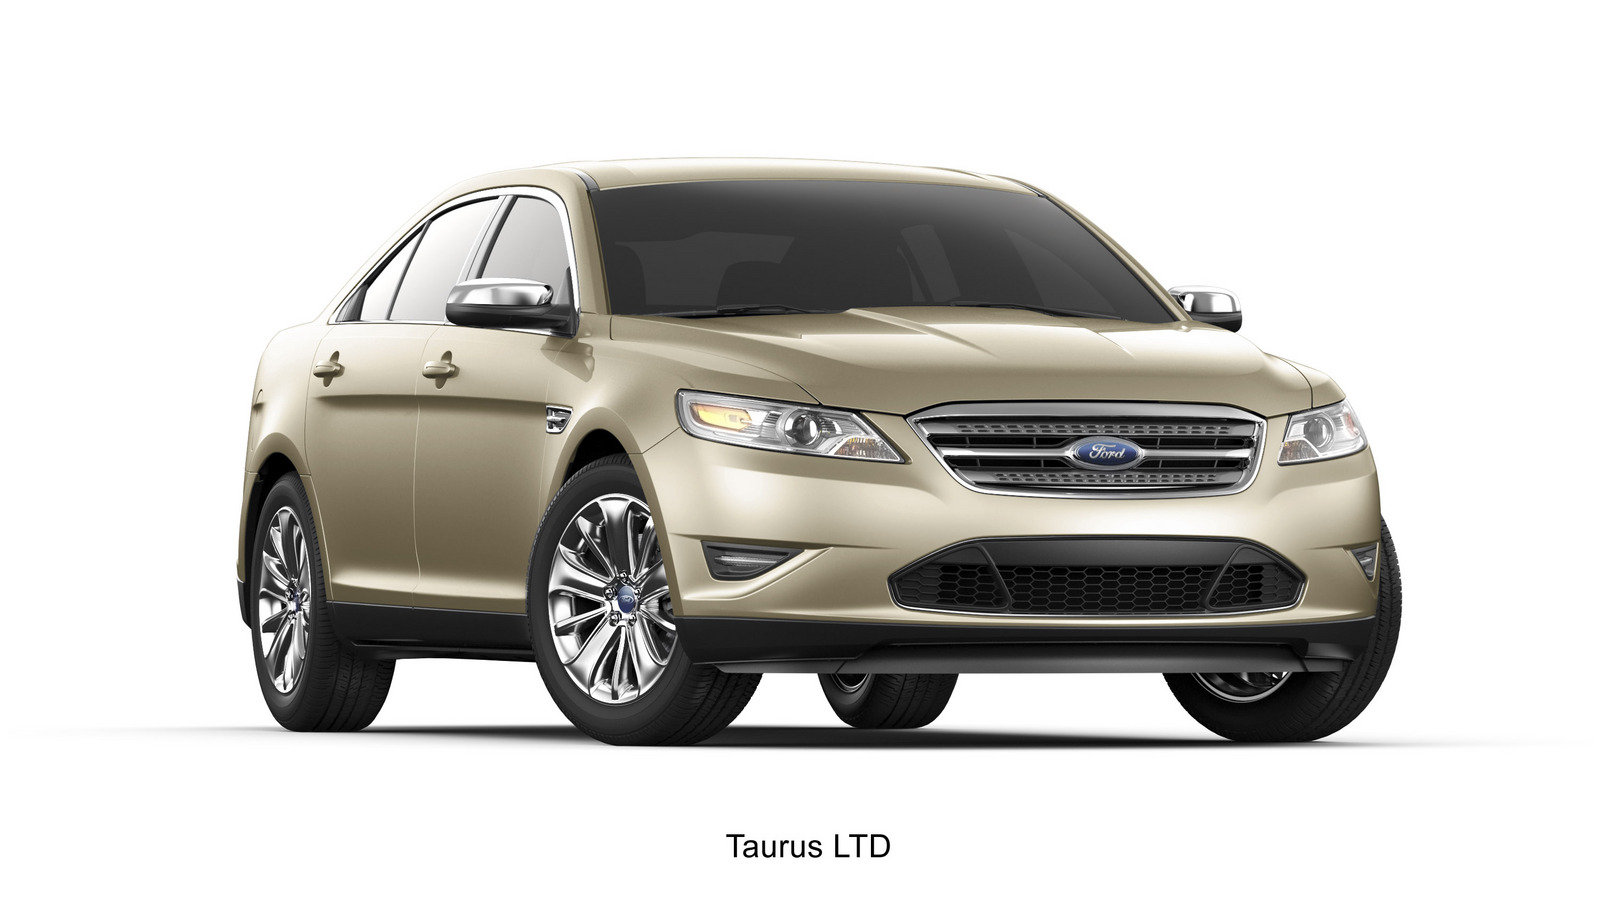 2010 ford taurus sho picture 306608 car review top speed. Black Bedroom Furniture Sets. Home Design Ideas